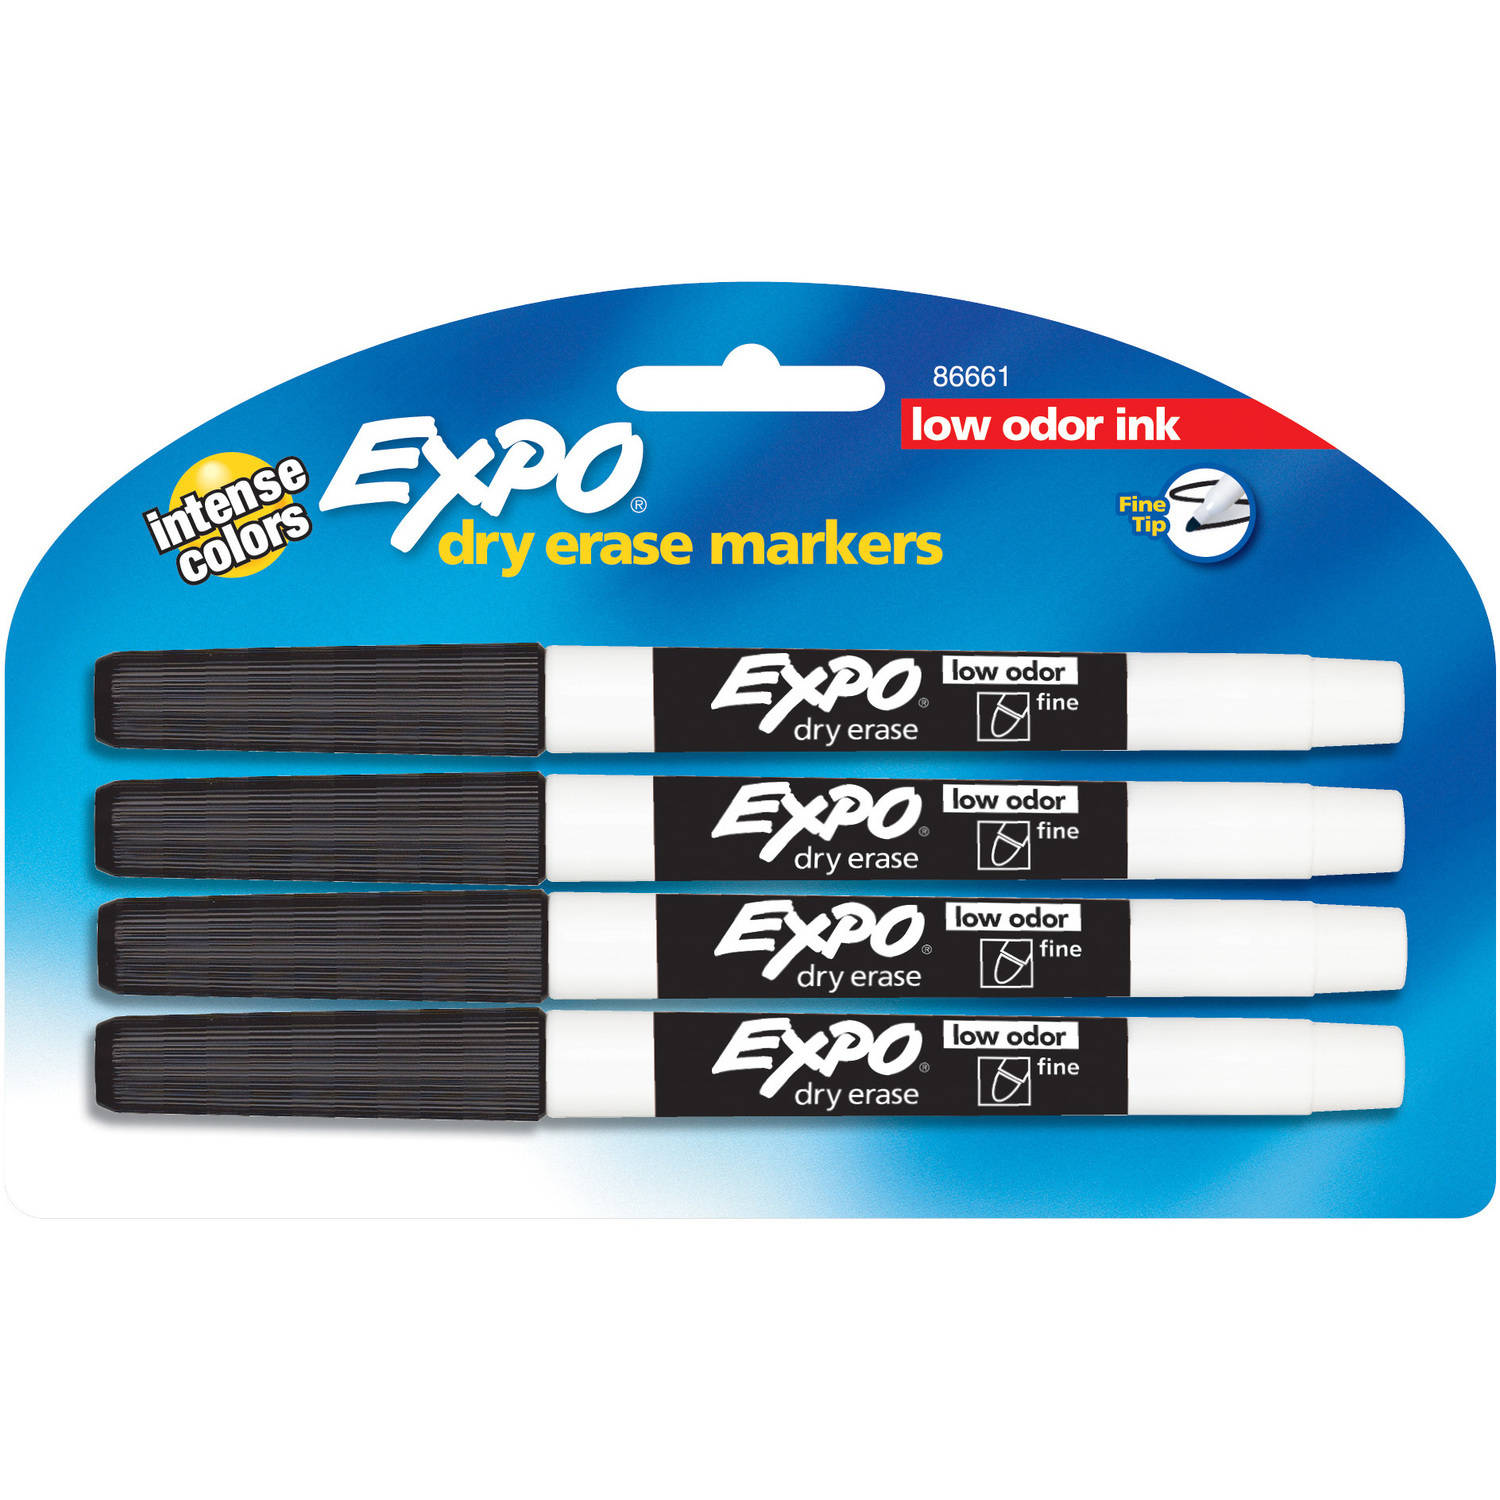 Expo Low-Odor Dry Erase Pen-Style Markers, 4pk, Black